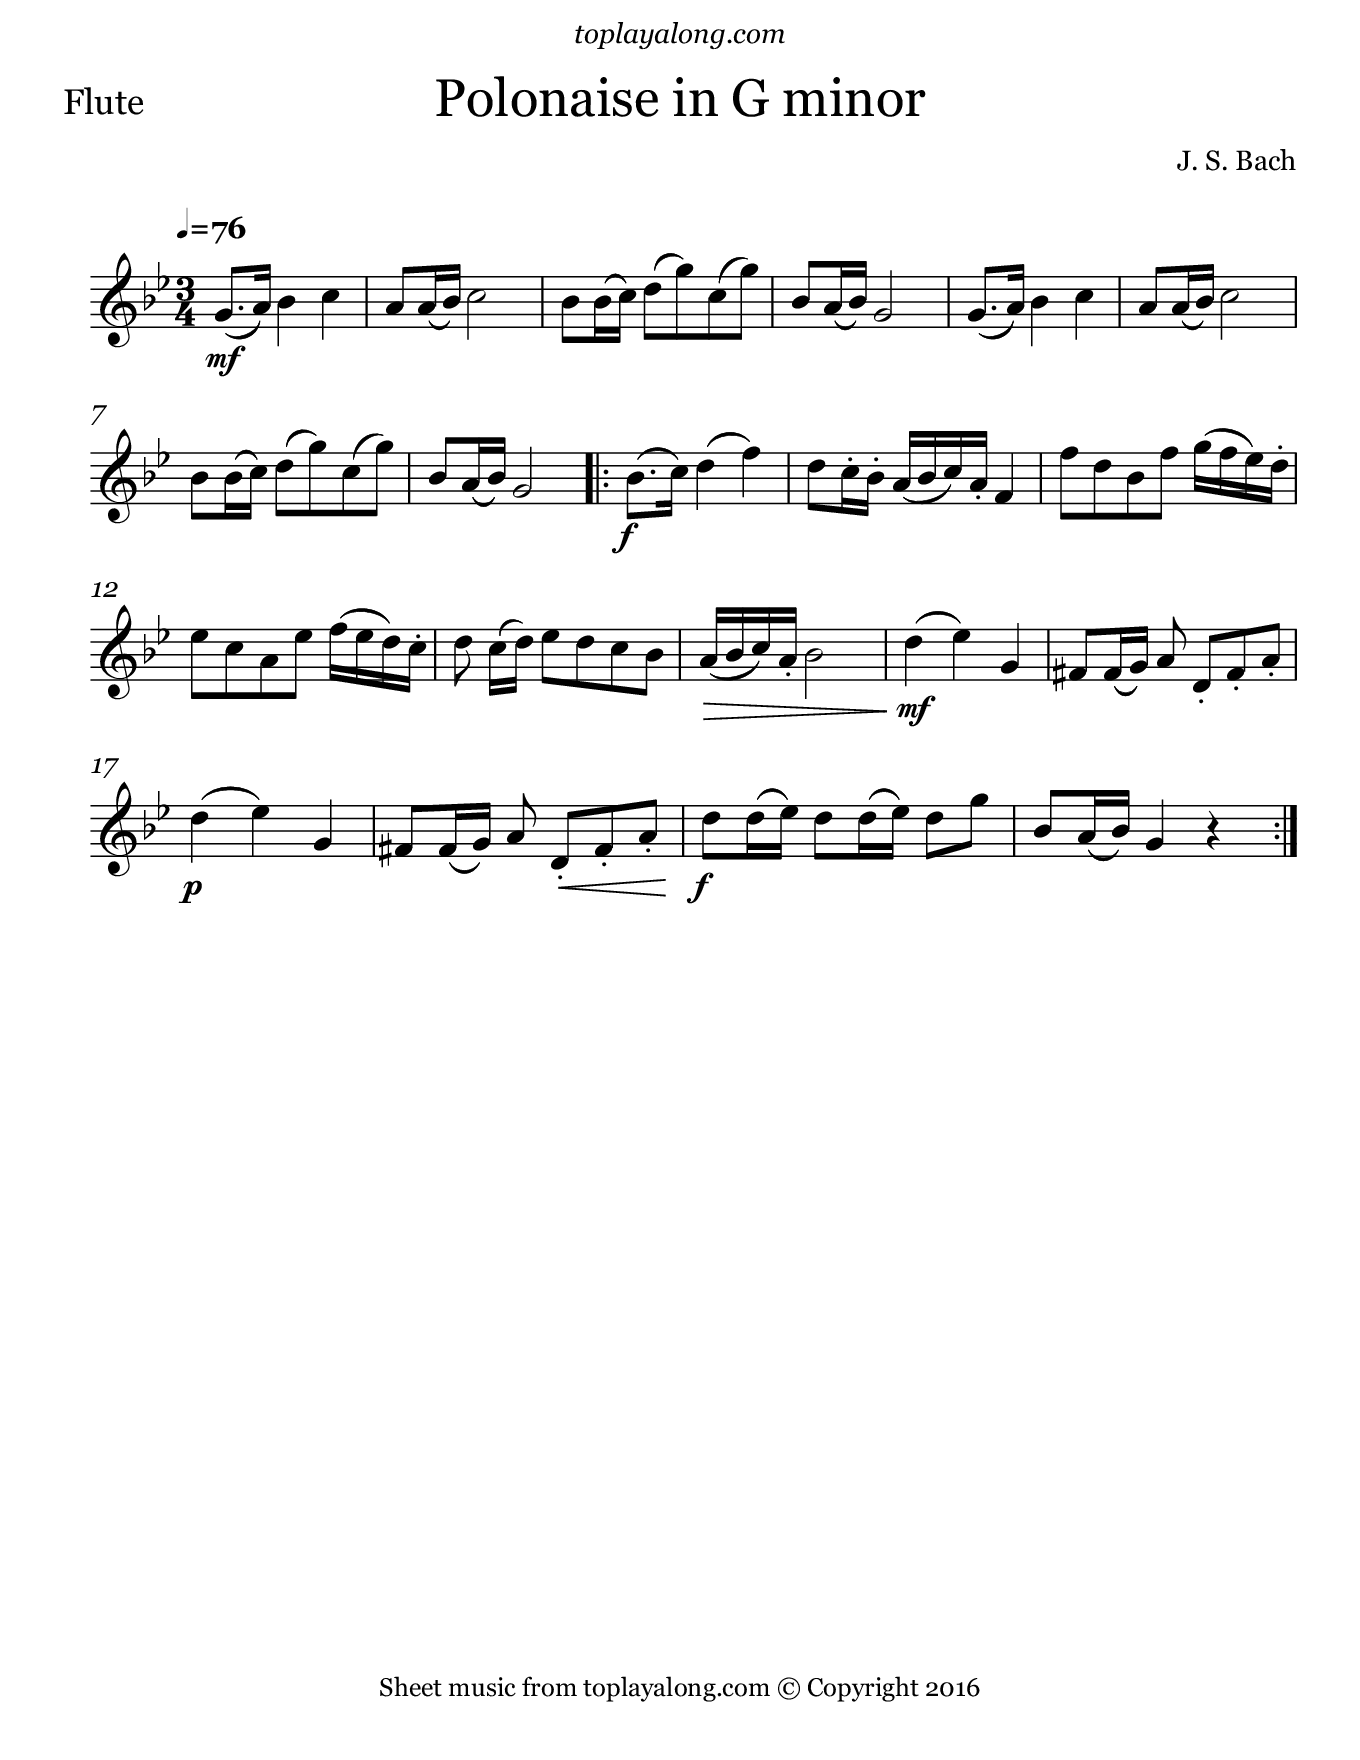 Polonaise in G minor by J. S. Bach. Sheet music for Flute, page 1.